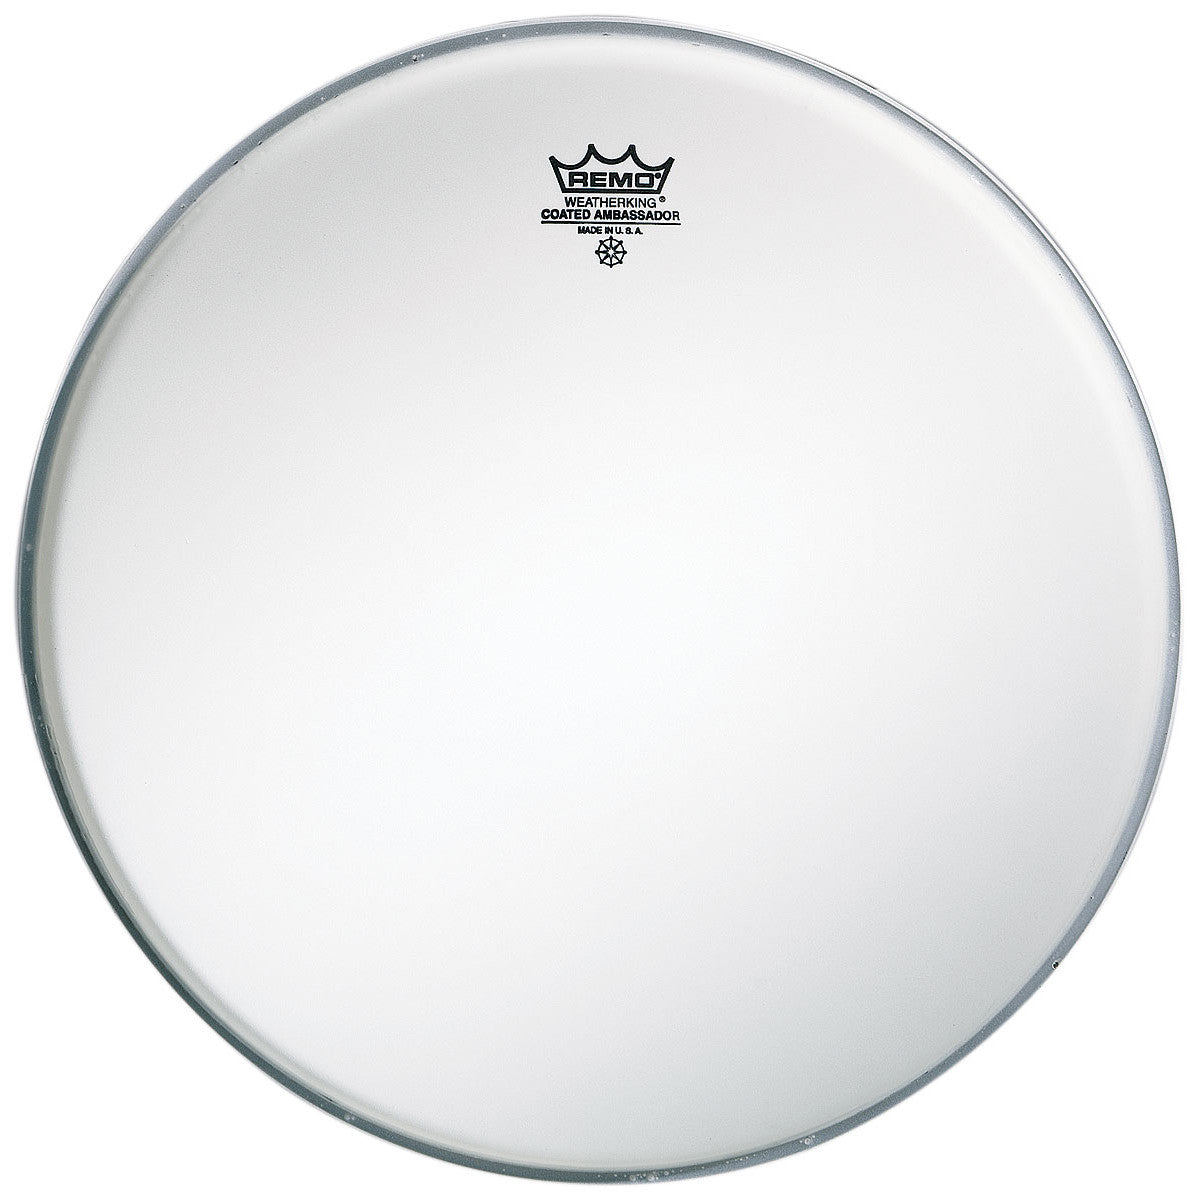 "Remo 14"" Ambassador, Coated Drum Head"